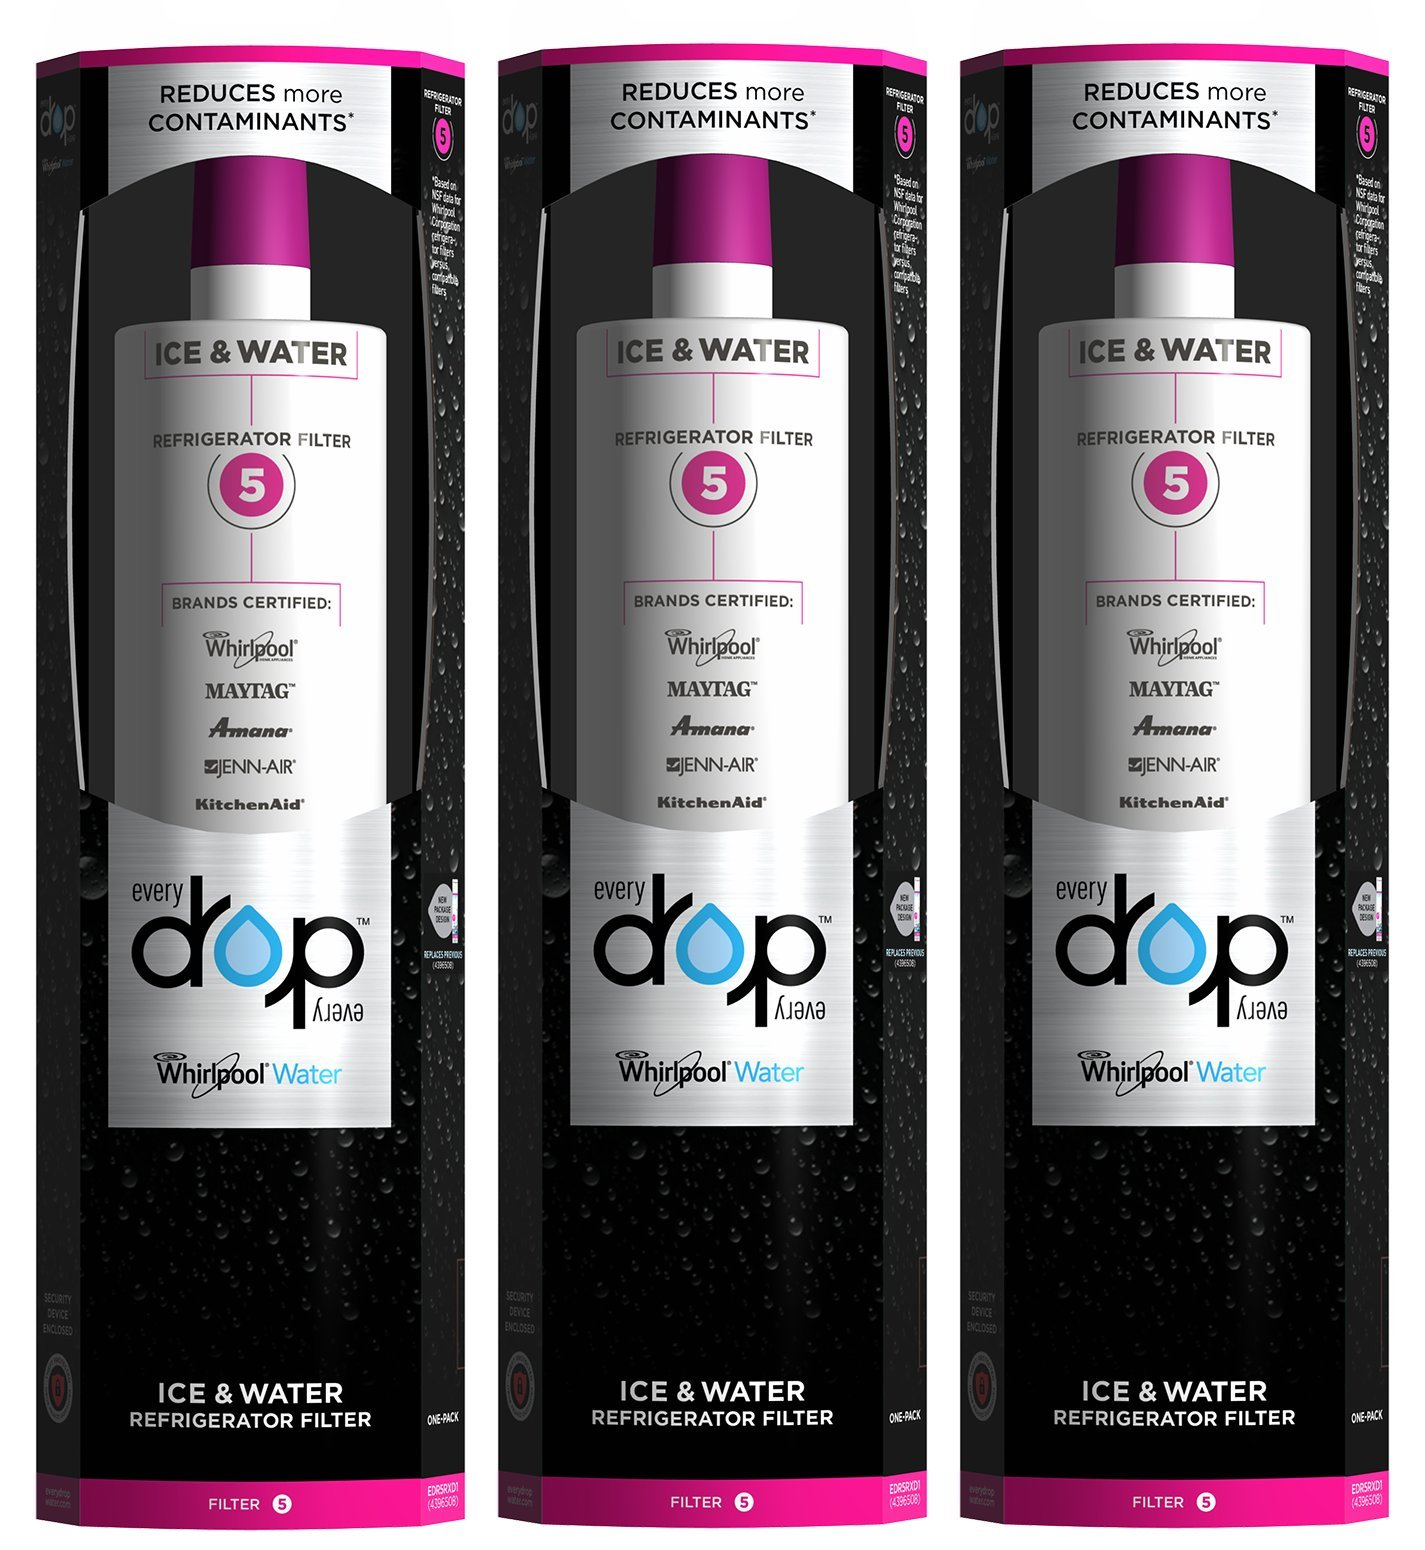 EveryDrop by Whirlpool Refrigerator Water Filter 5 (Pack of 3)